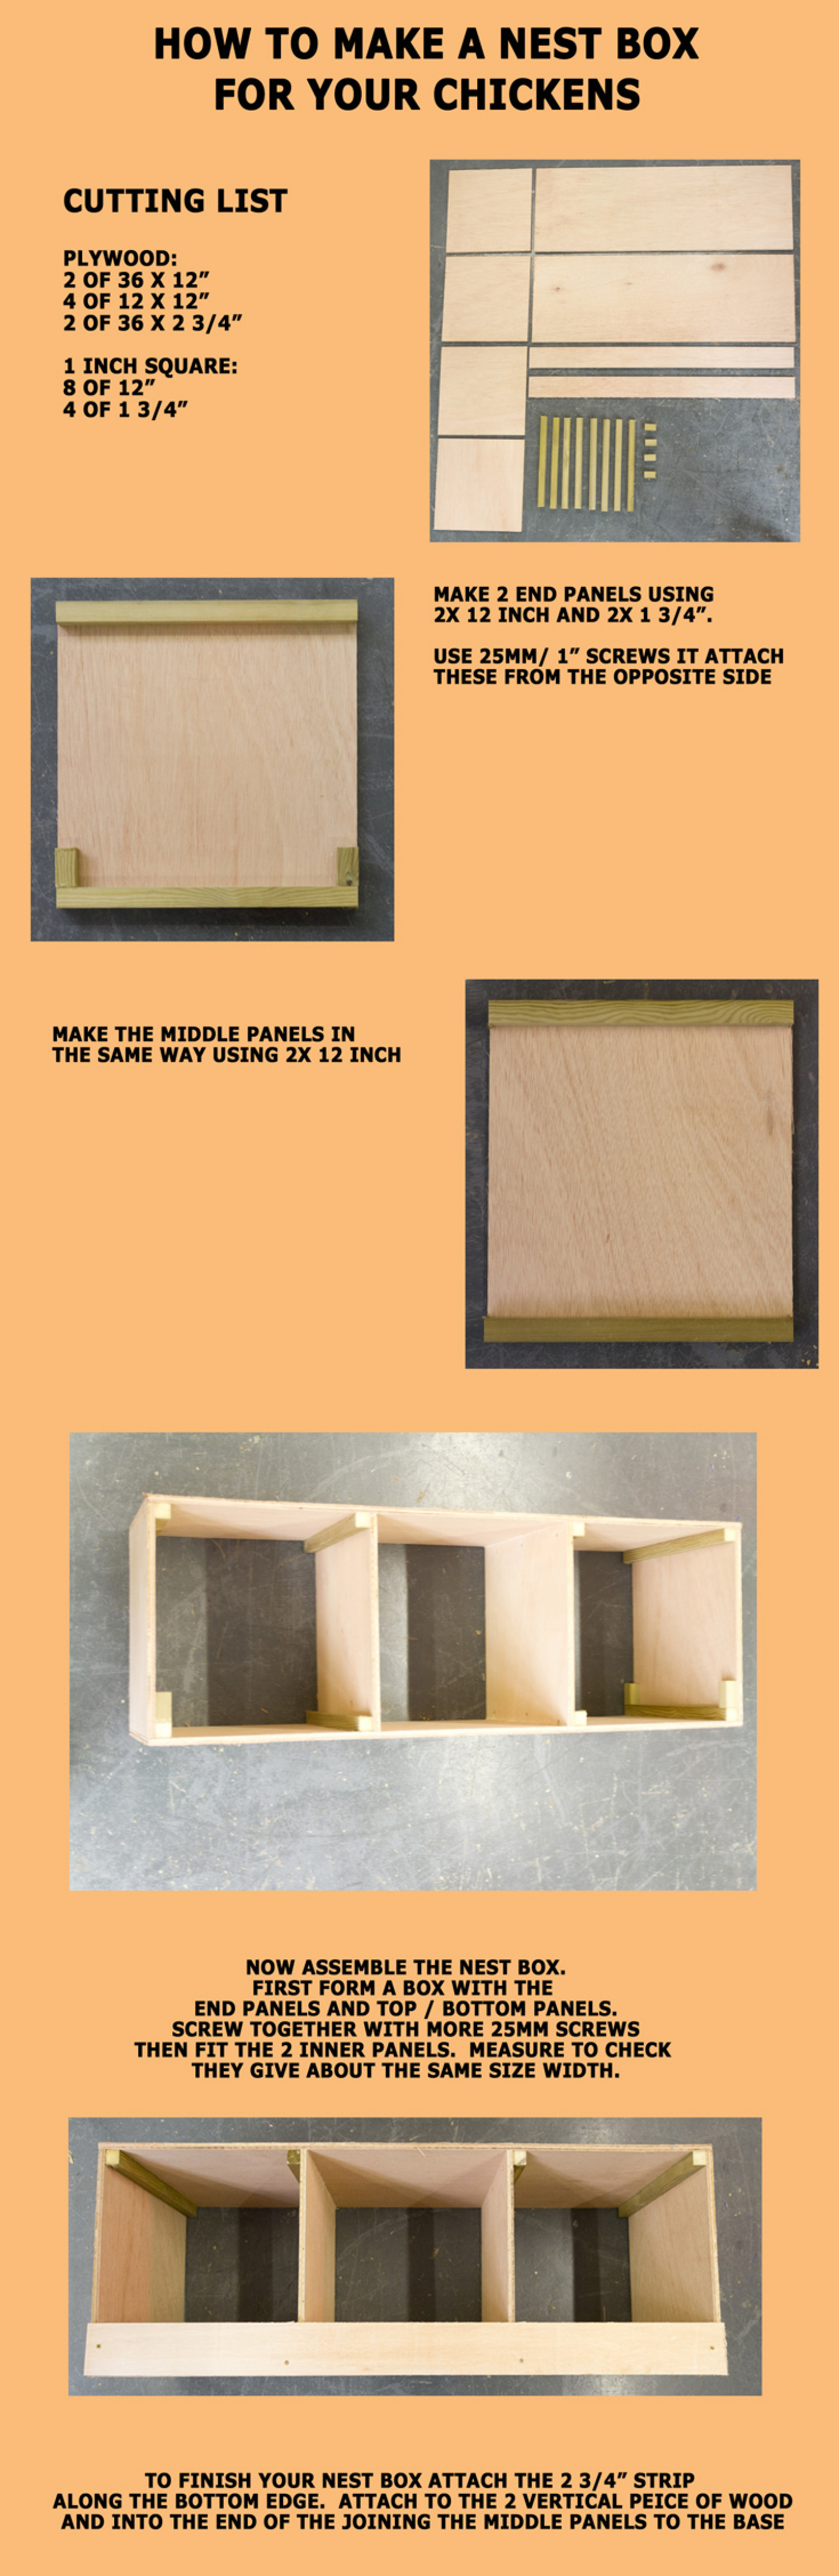 How to make a Nest box for your Chickens Infographic